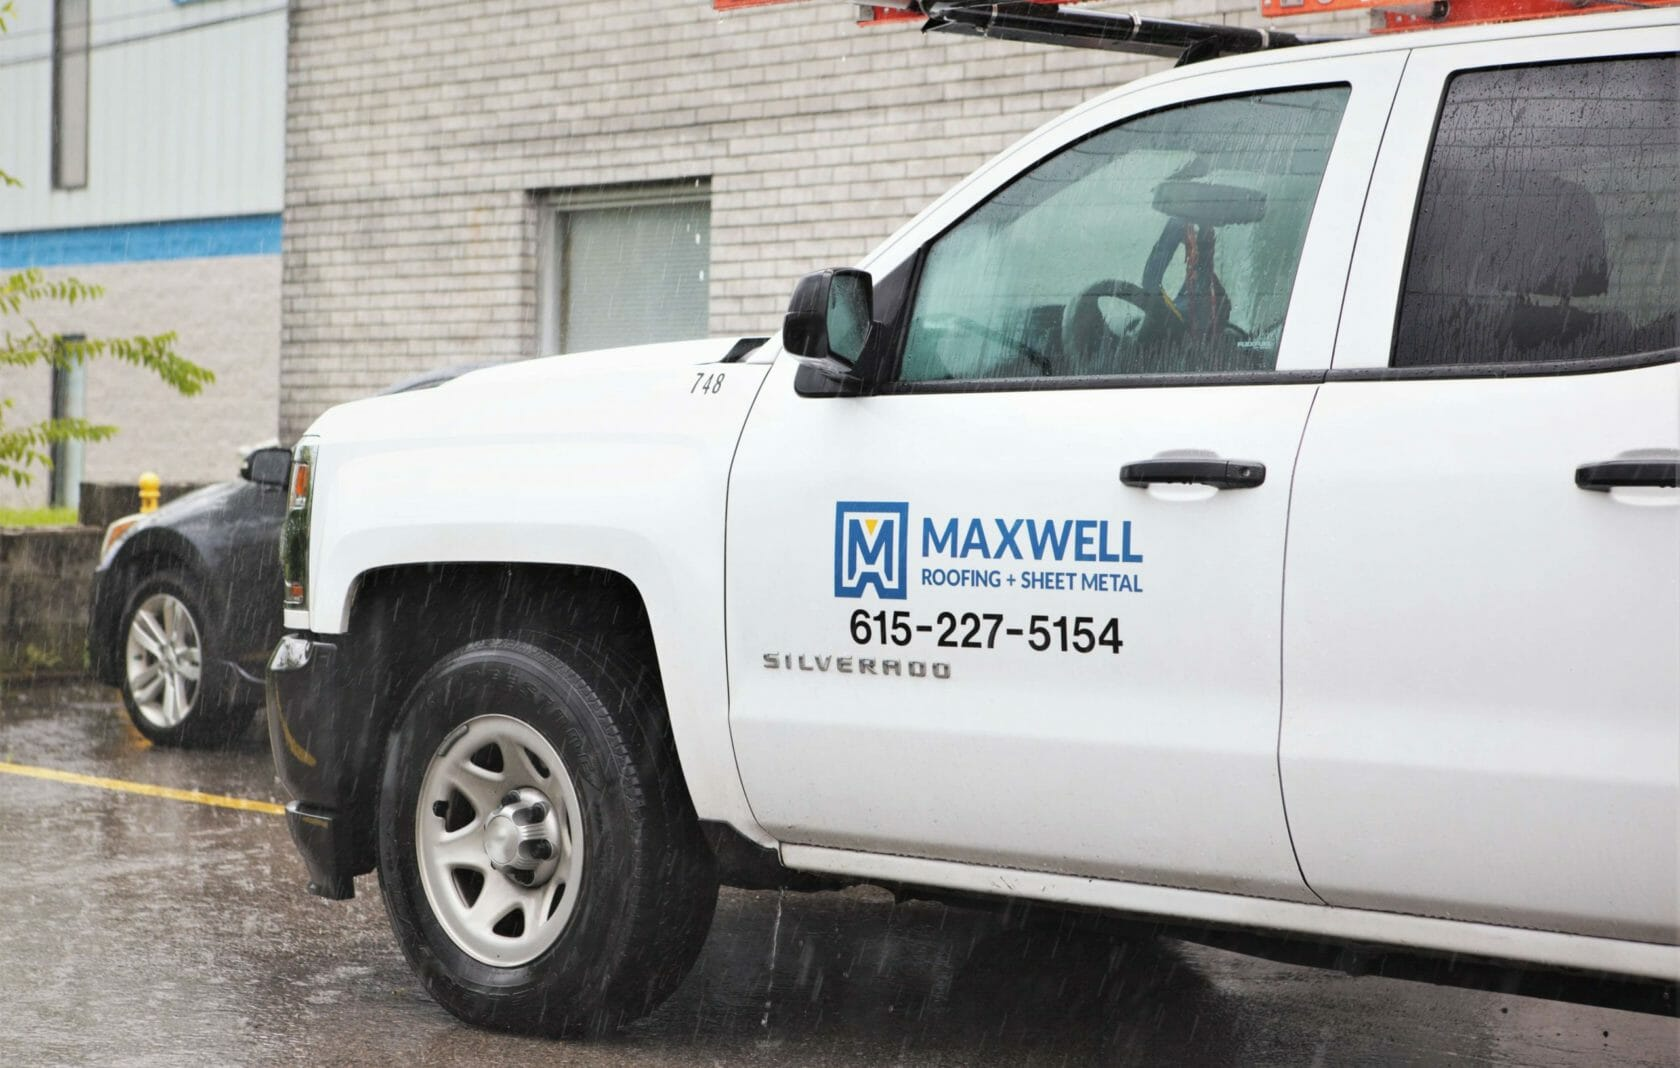 maxwell roofing logo on white service truck